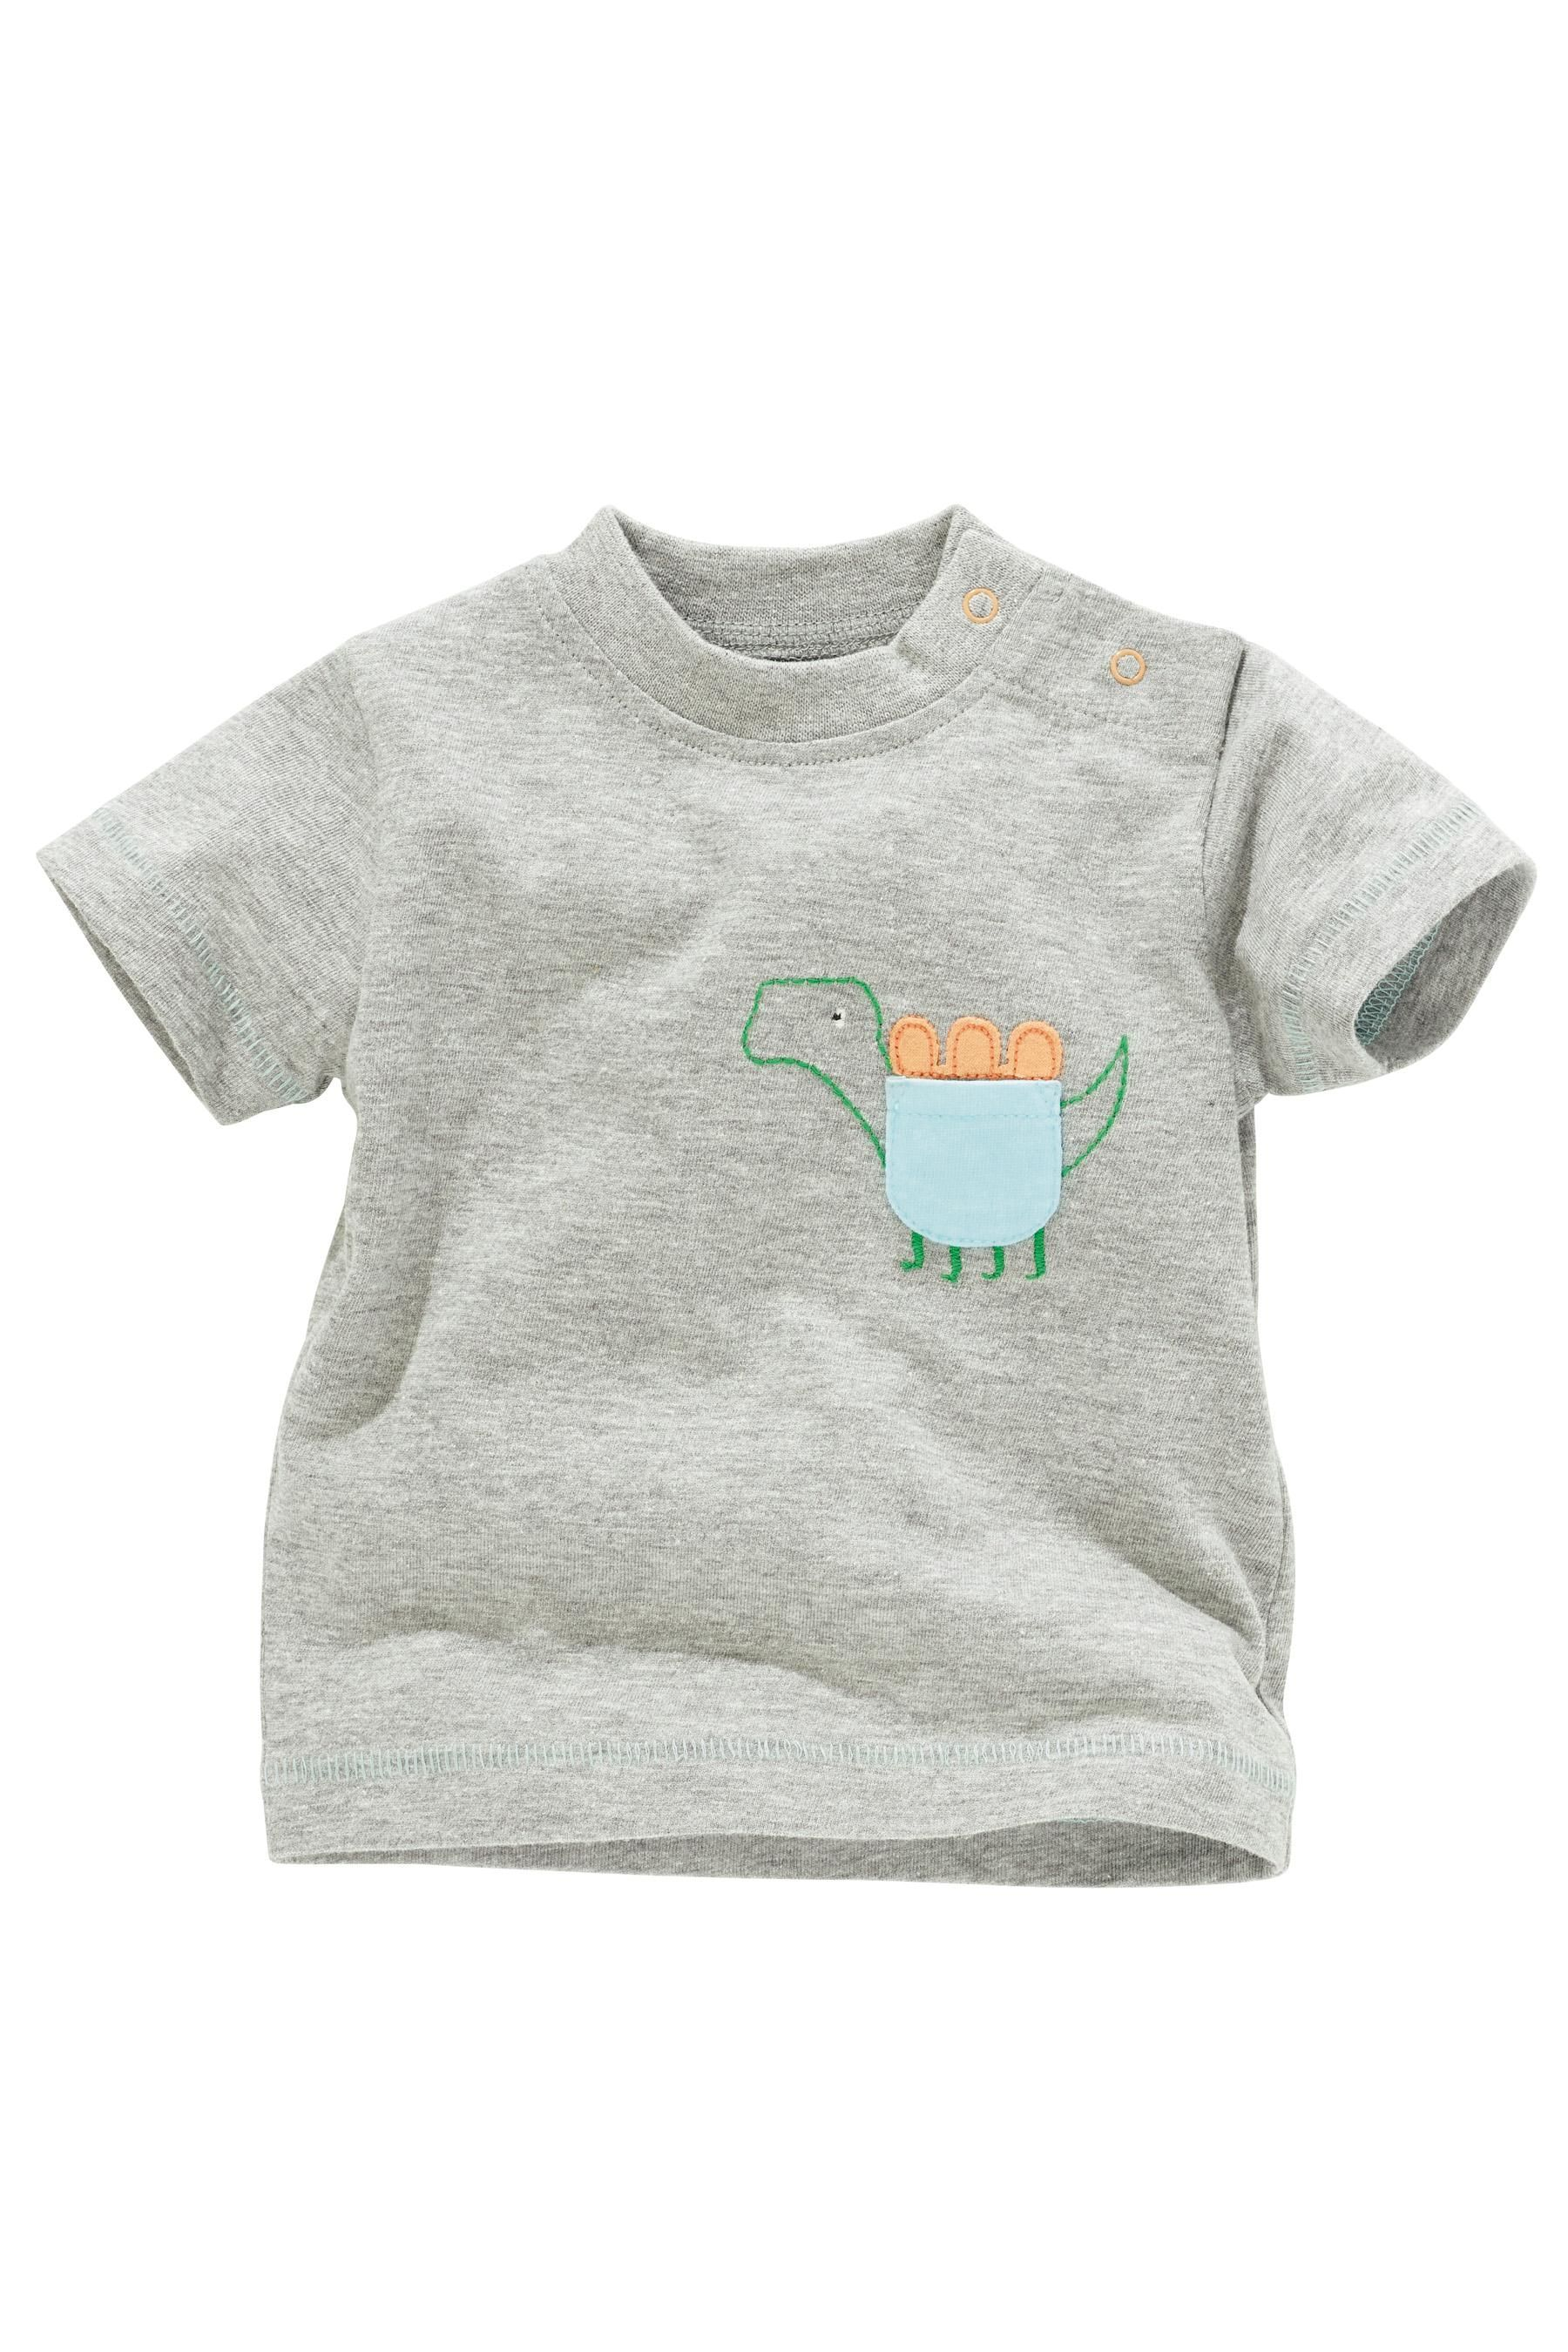 Buy Dino T Shirts Three Pack 0 18mths from the Next UK online shop